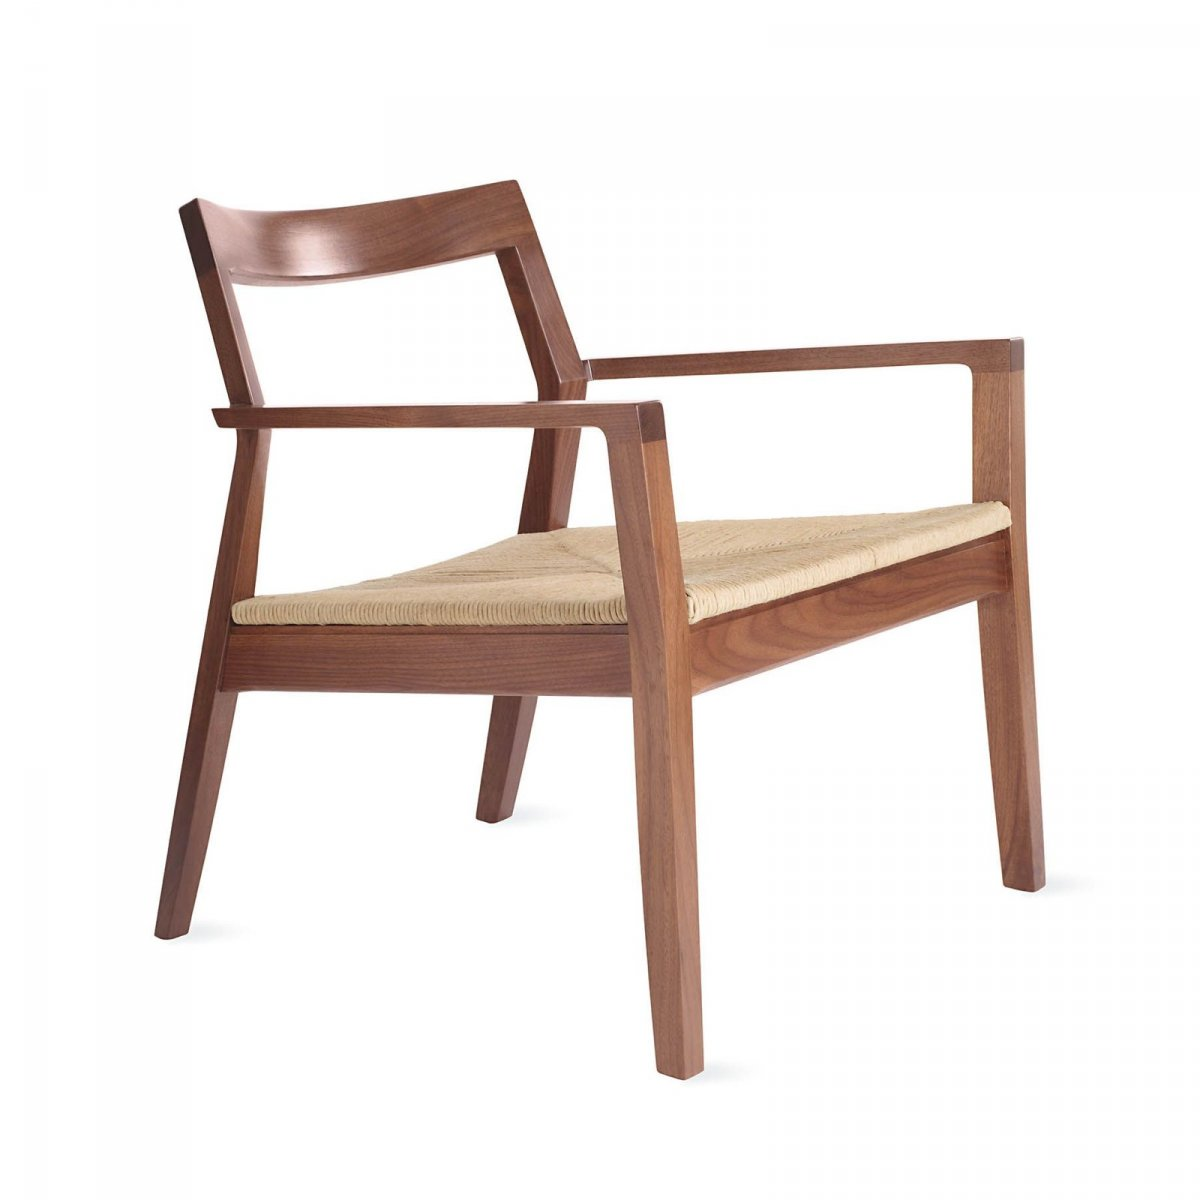 Krusin Lounge Arm Chair, walnut.